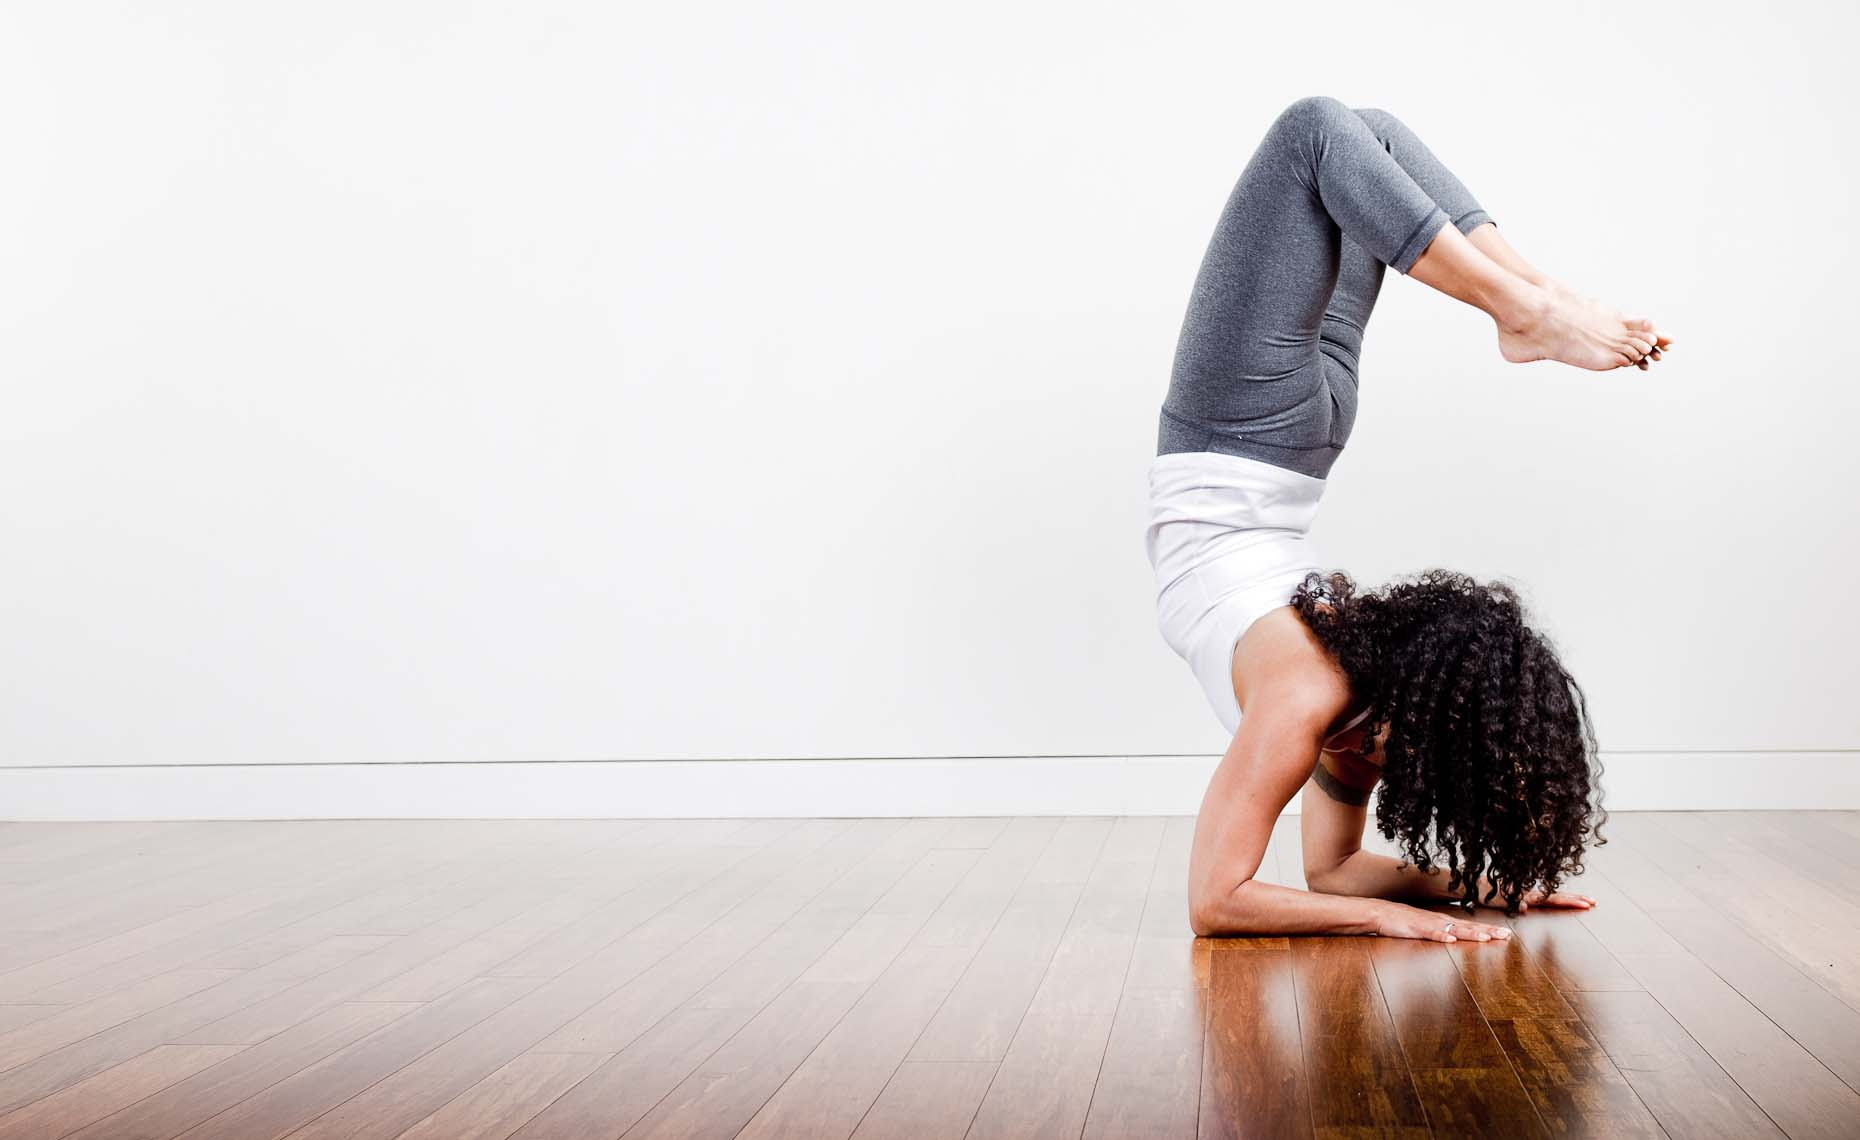 Yoga pose at Yyoga facilities in downtown vancouver.